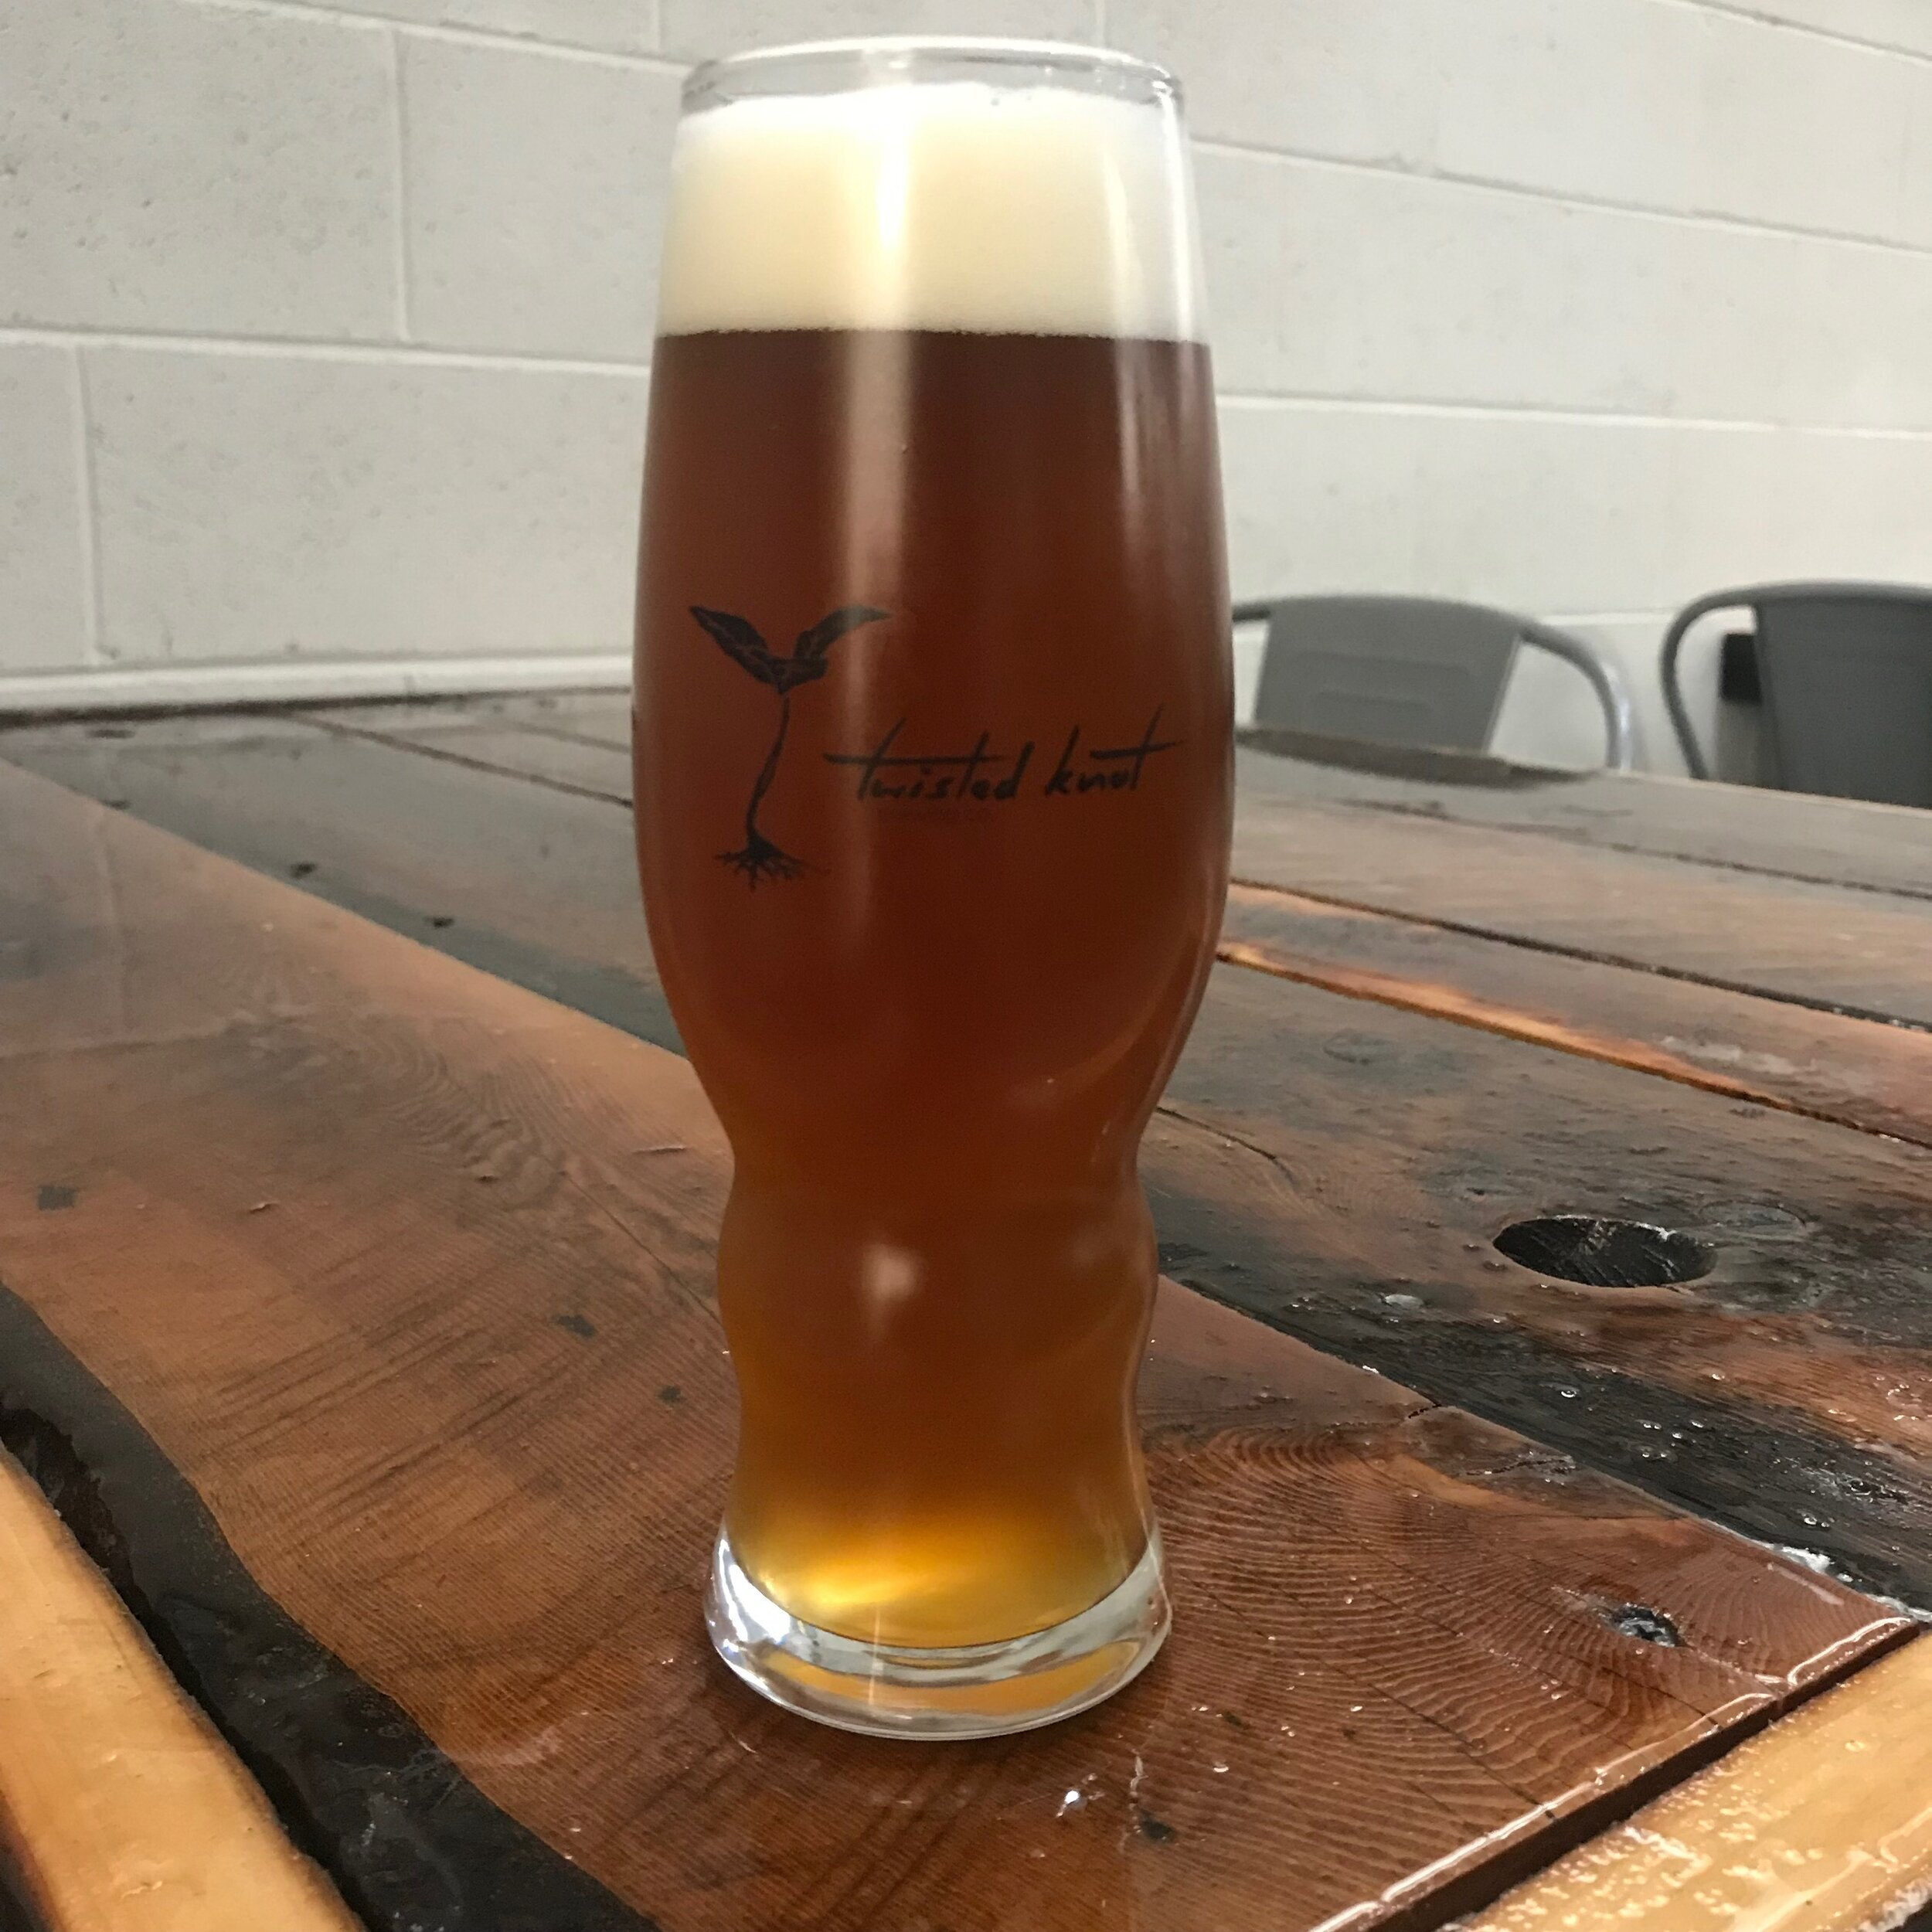 TerrariumBeer Club - Sign up throughout October for $50 +taxMembership is for 1 yearExclusive glass that we will keep at the brewery for you to use (you get to keep the glass at the end of the year)Beer club glass fills at the full pour price that gets you UP TO 60% more beer!Access to 2 member ONLY private eventsGuaranteed spot if you renewA little something extra we will be sharing in a Terrarium Beer Club update soon. Joining the Terrarium Beer Club gets you these perks, but it will also help us make a MUCH NEEDED equipment upgrade that we couldn't do without you!  Thank you for helping us build our business.